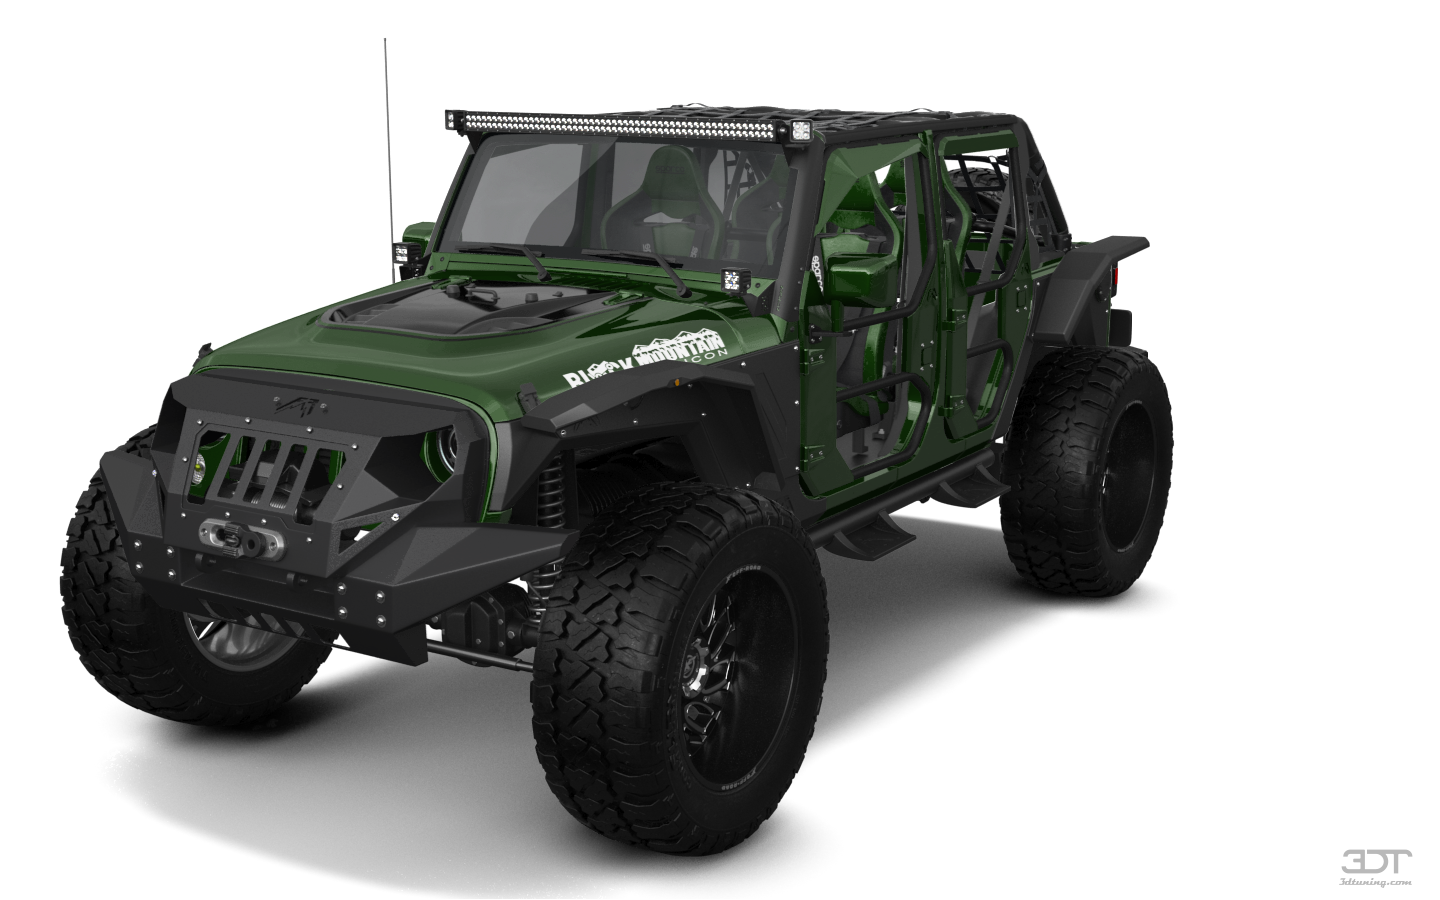 Jeep Wrangler Unlimited Rubicon Recon 4 Door SUV 2017 tuning